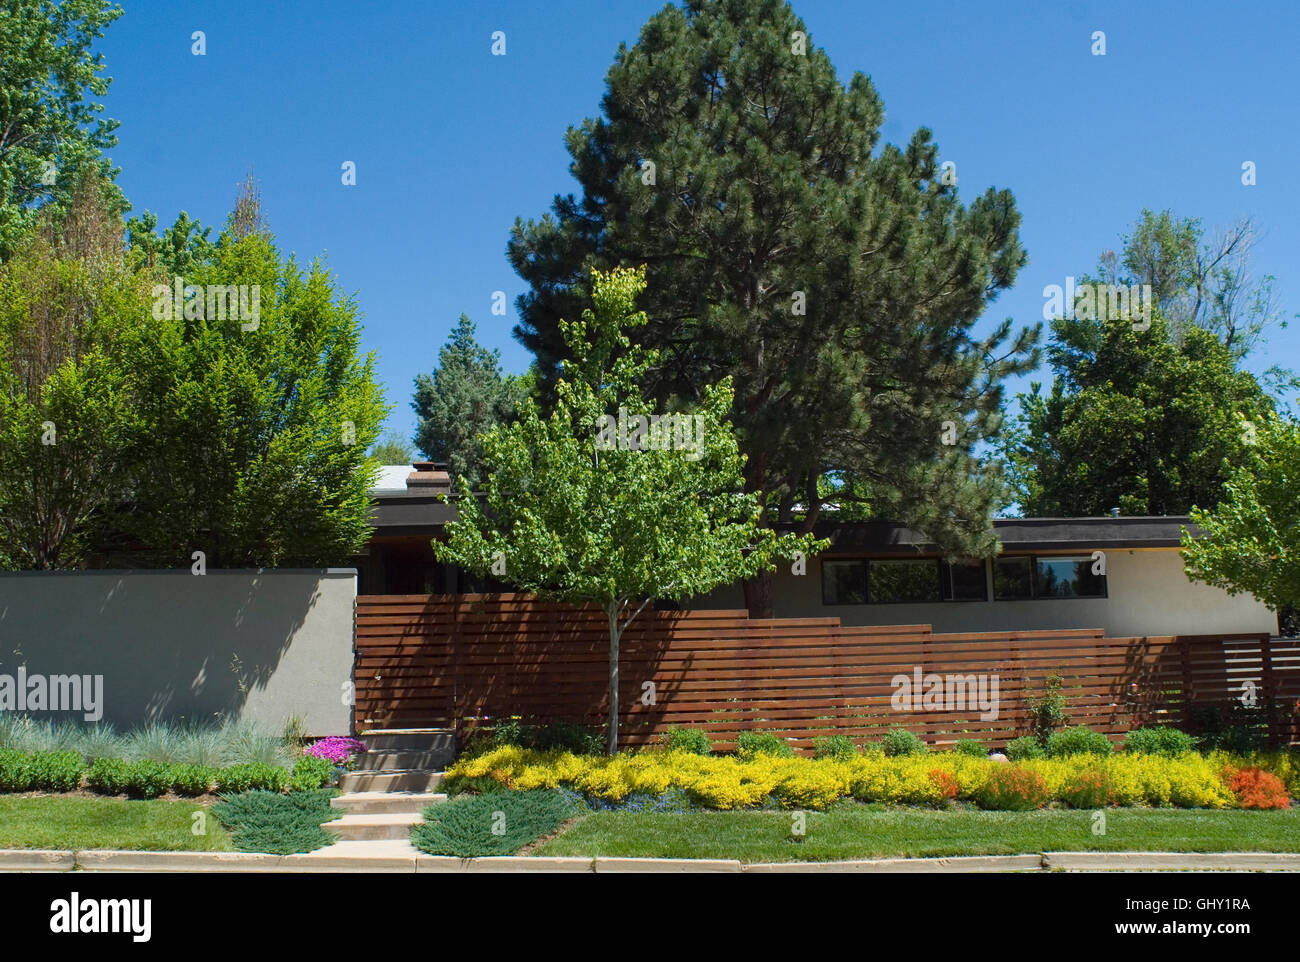 Boulder Garden At Mid Century Modern Home In The Newlands Stock Photo Alamy It was super fun climbing there. https www alamy com stock photo boulder garden at mid century modern home in the newlands neighborhood 114305502 html